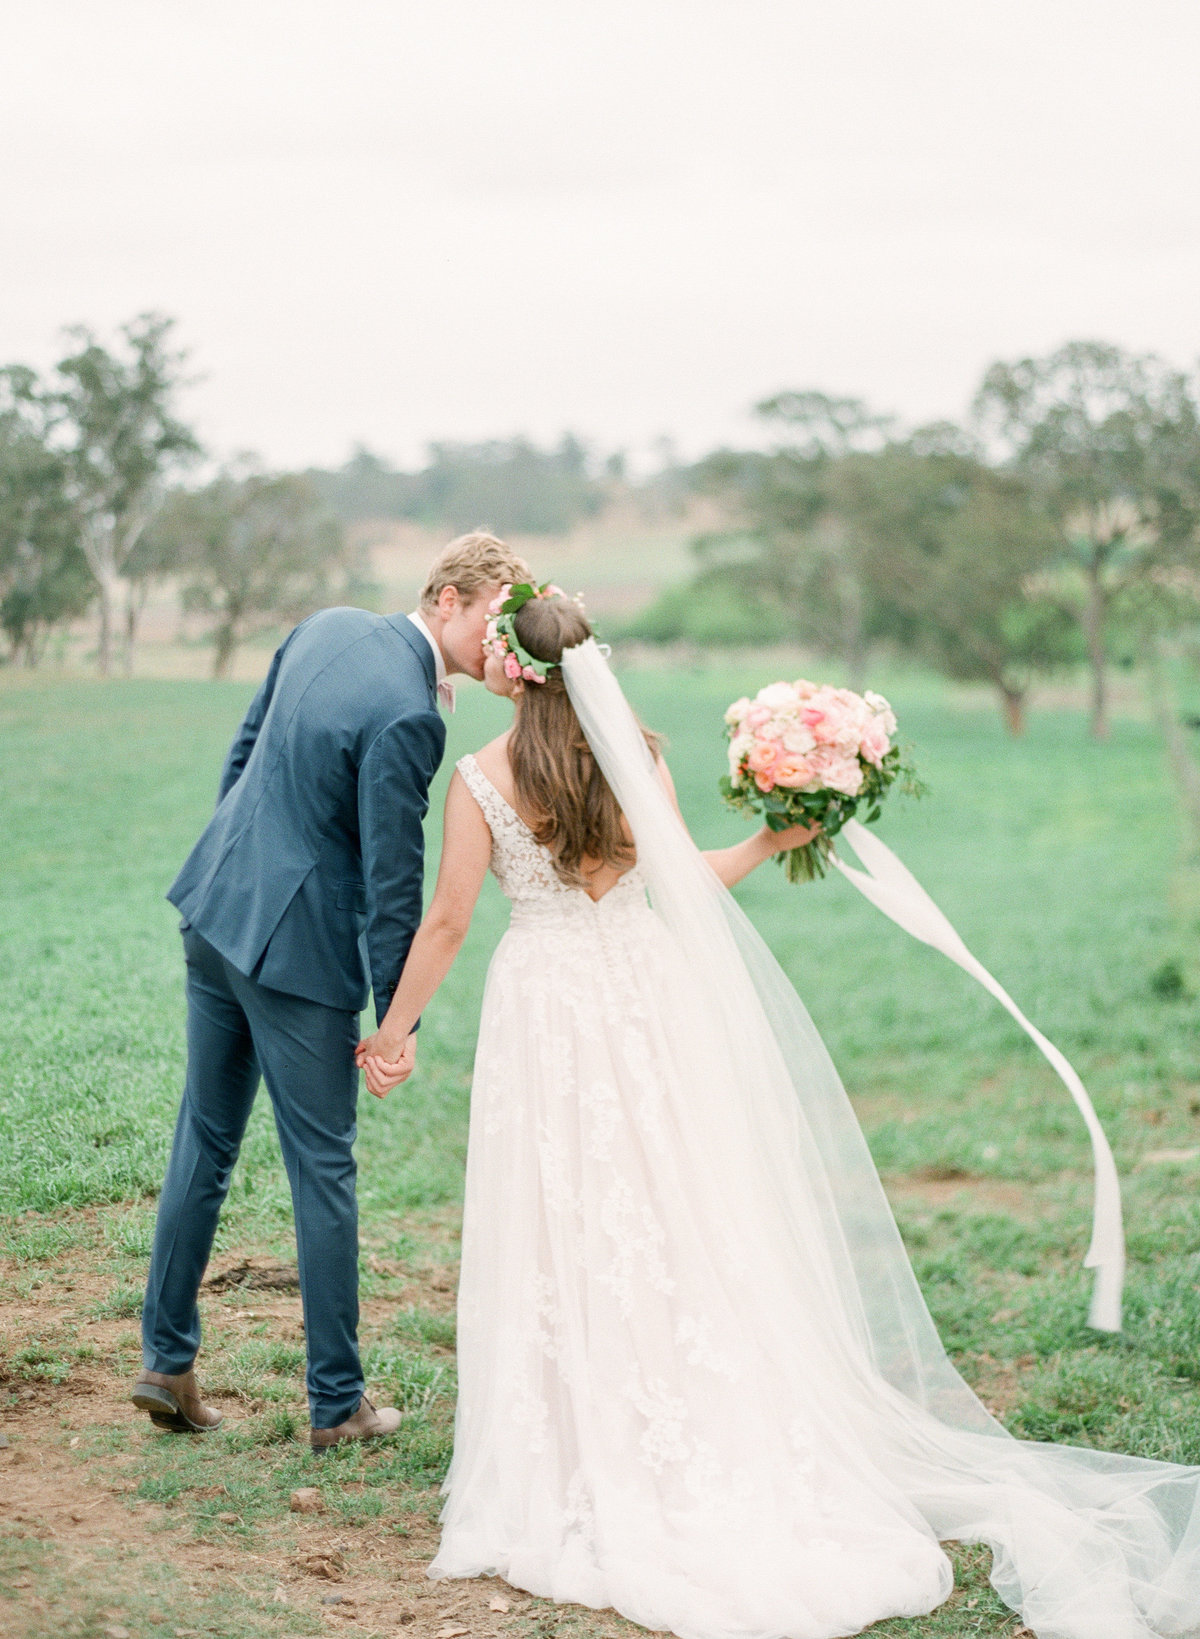 dreamy fine art wedding australia camden will capen 0069